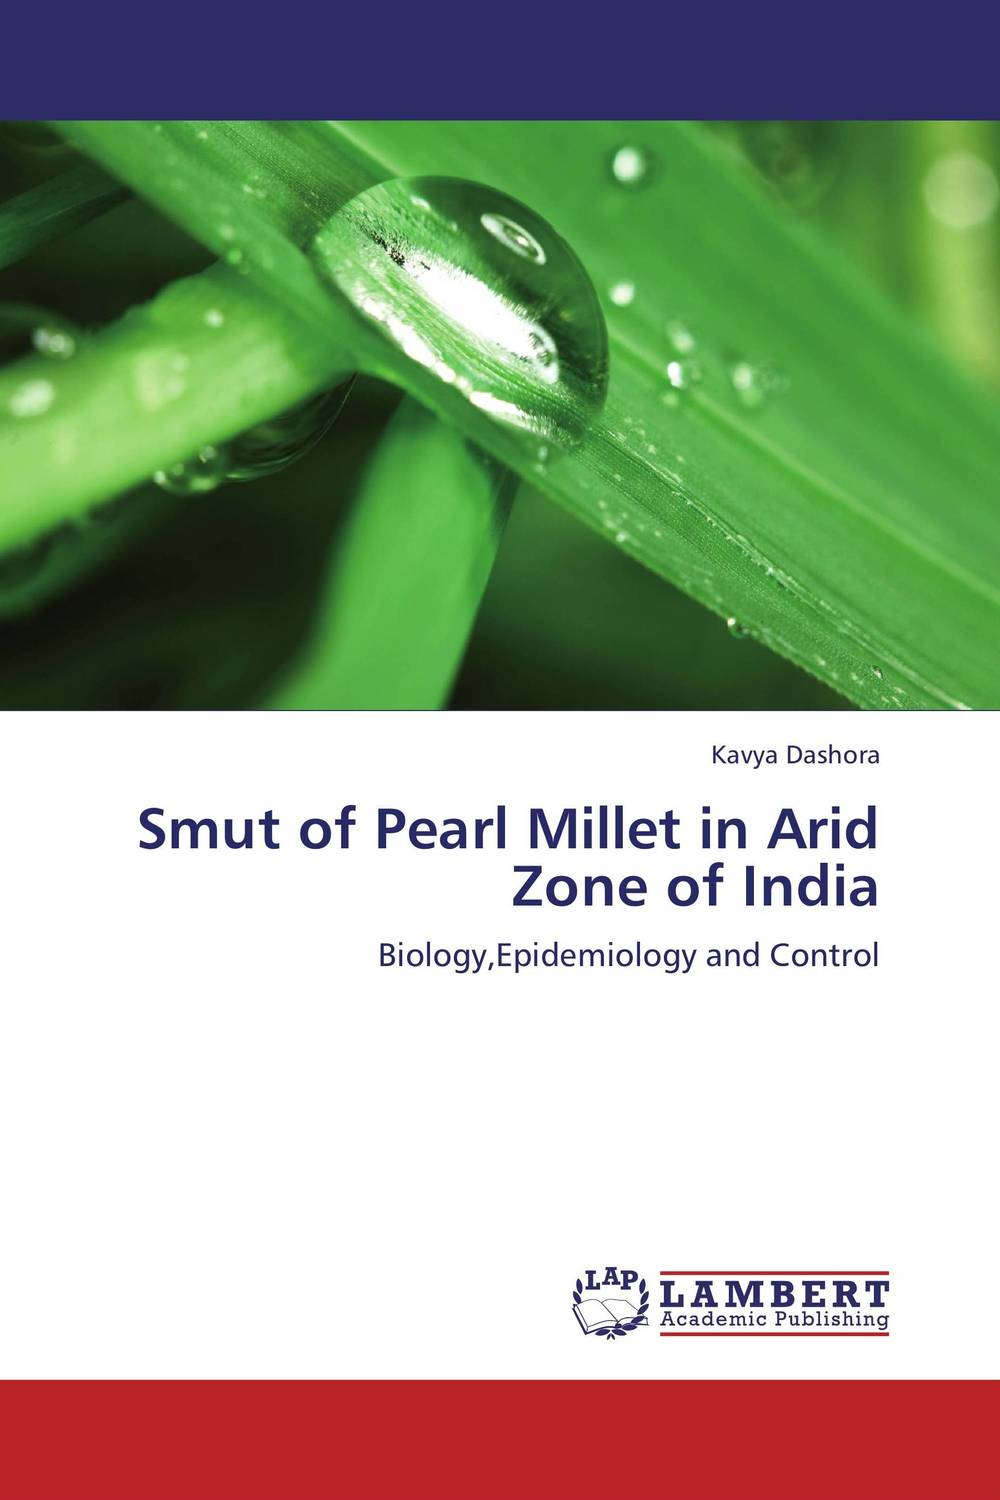 Smut of Pearl Millet in Arid Zone of India майка классическая printio sadhus of india